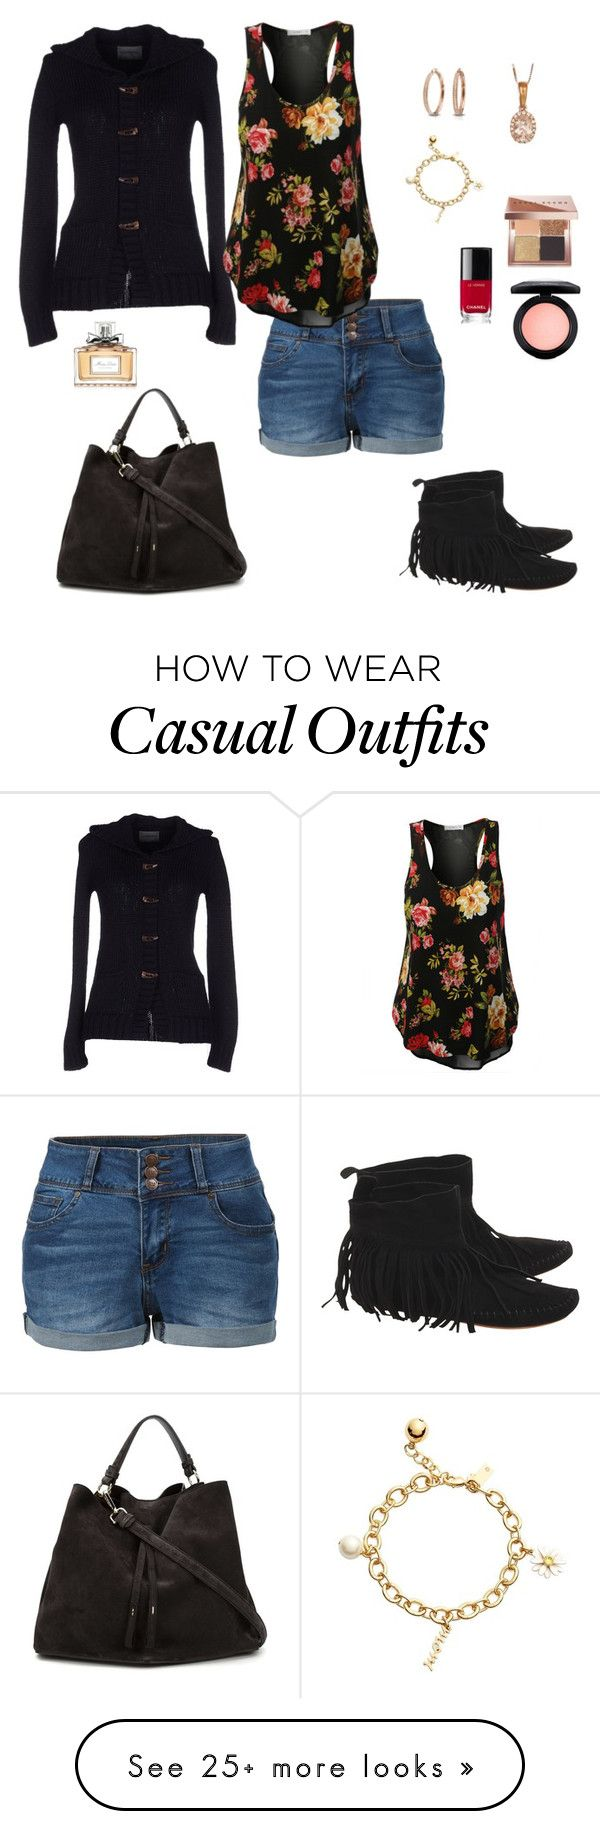 """casual chic"" by karen-powell on Polyvore featuring LE3NO, Sarah Jackson, One Teaspoon, Kate Spade, MAC Cosmetics, Bling Jewelry, Maison Margiela, Christian Dior, Chanel and Bobbi Brown Cosmetics"